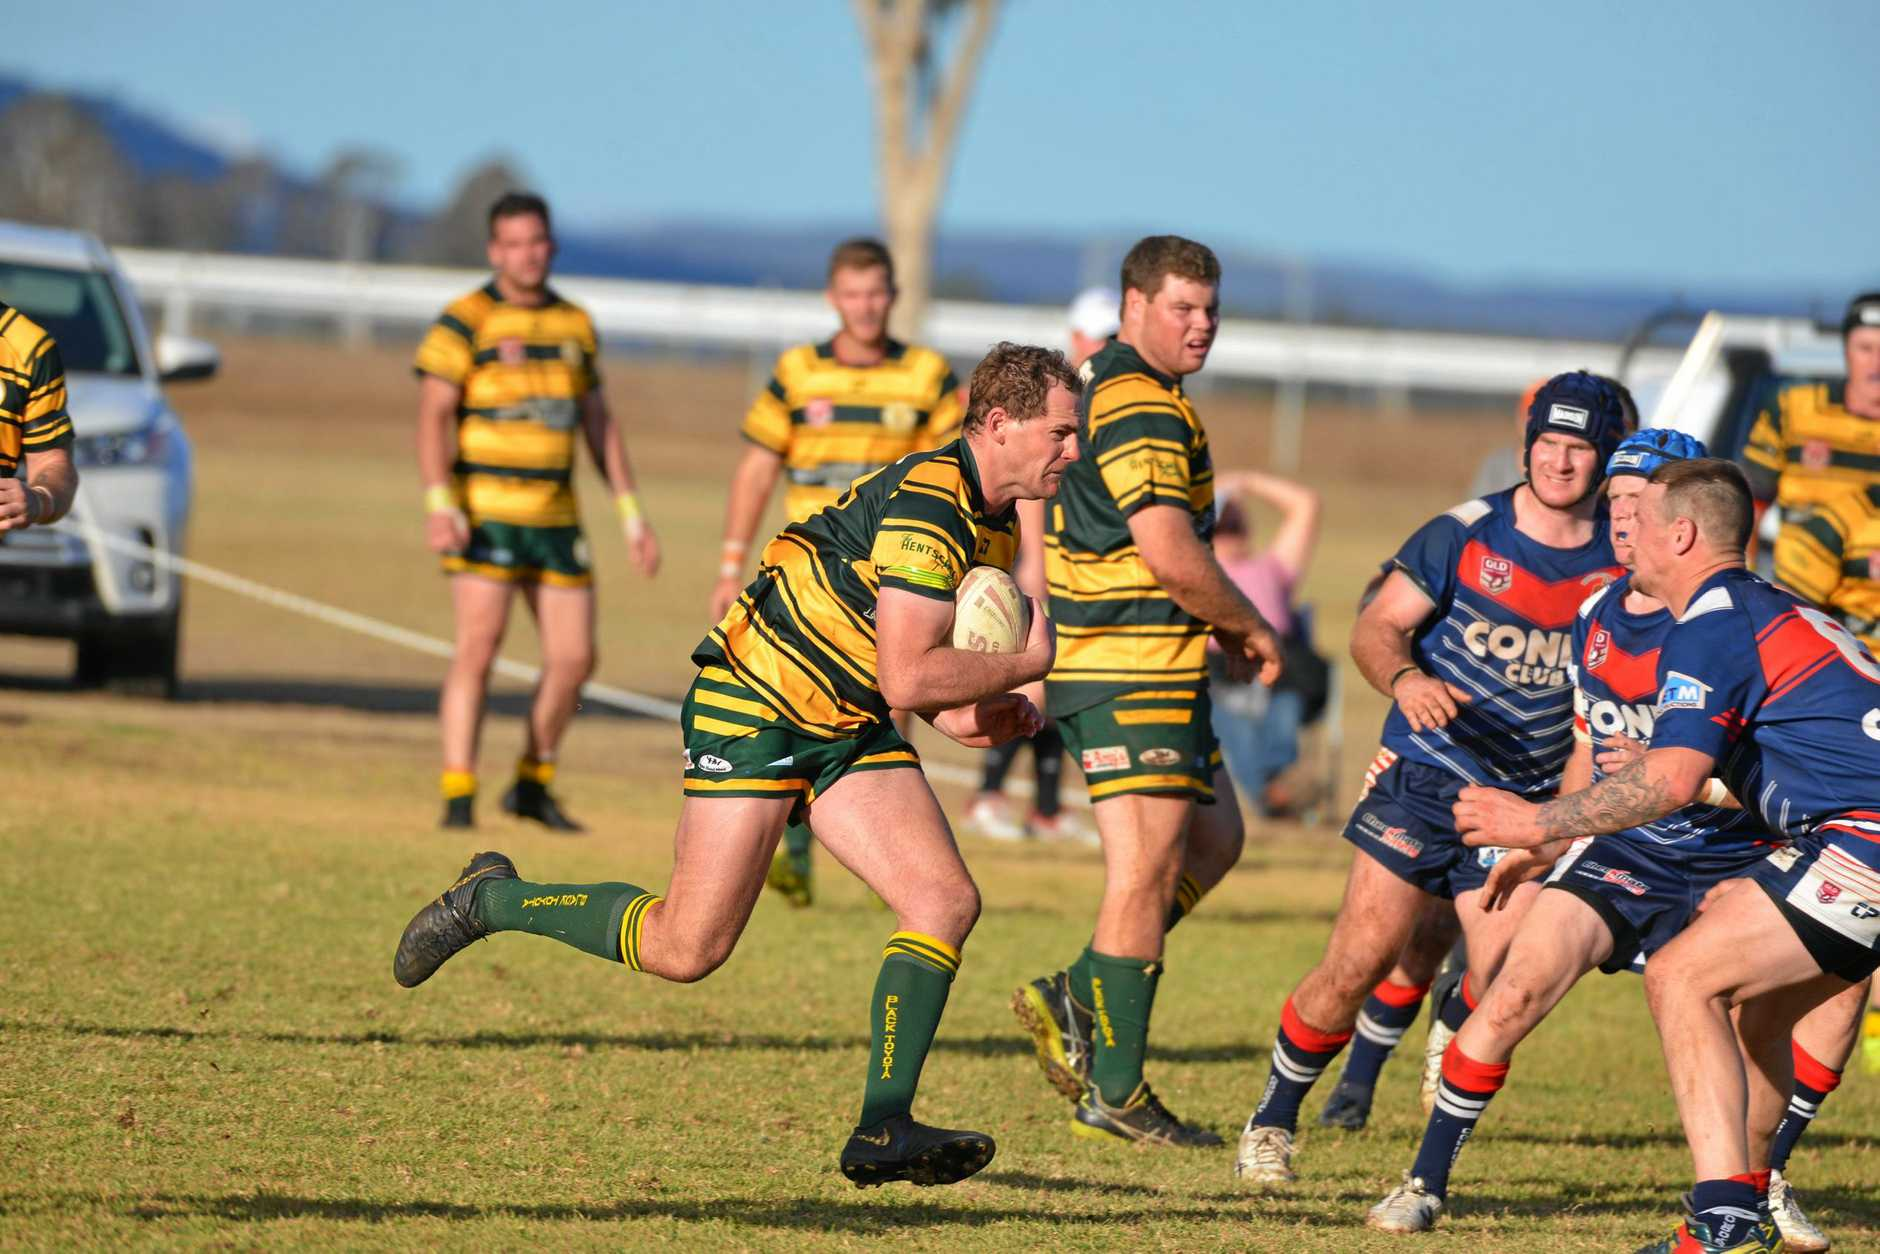 RETURNING FROM INJURY: Wattles co-captain Dale Perkins runs hard in a 42-6 win against Warwick in the second round of A grade at Platz Oval. The same two teams will meet on Sunday in Toowoomba.